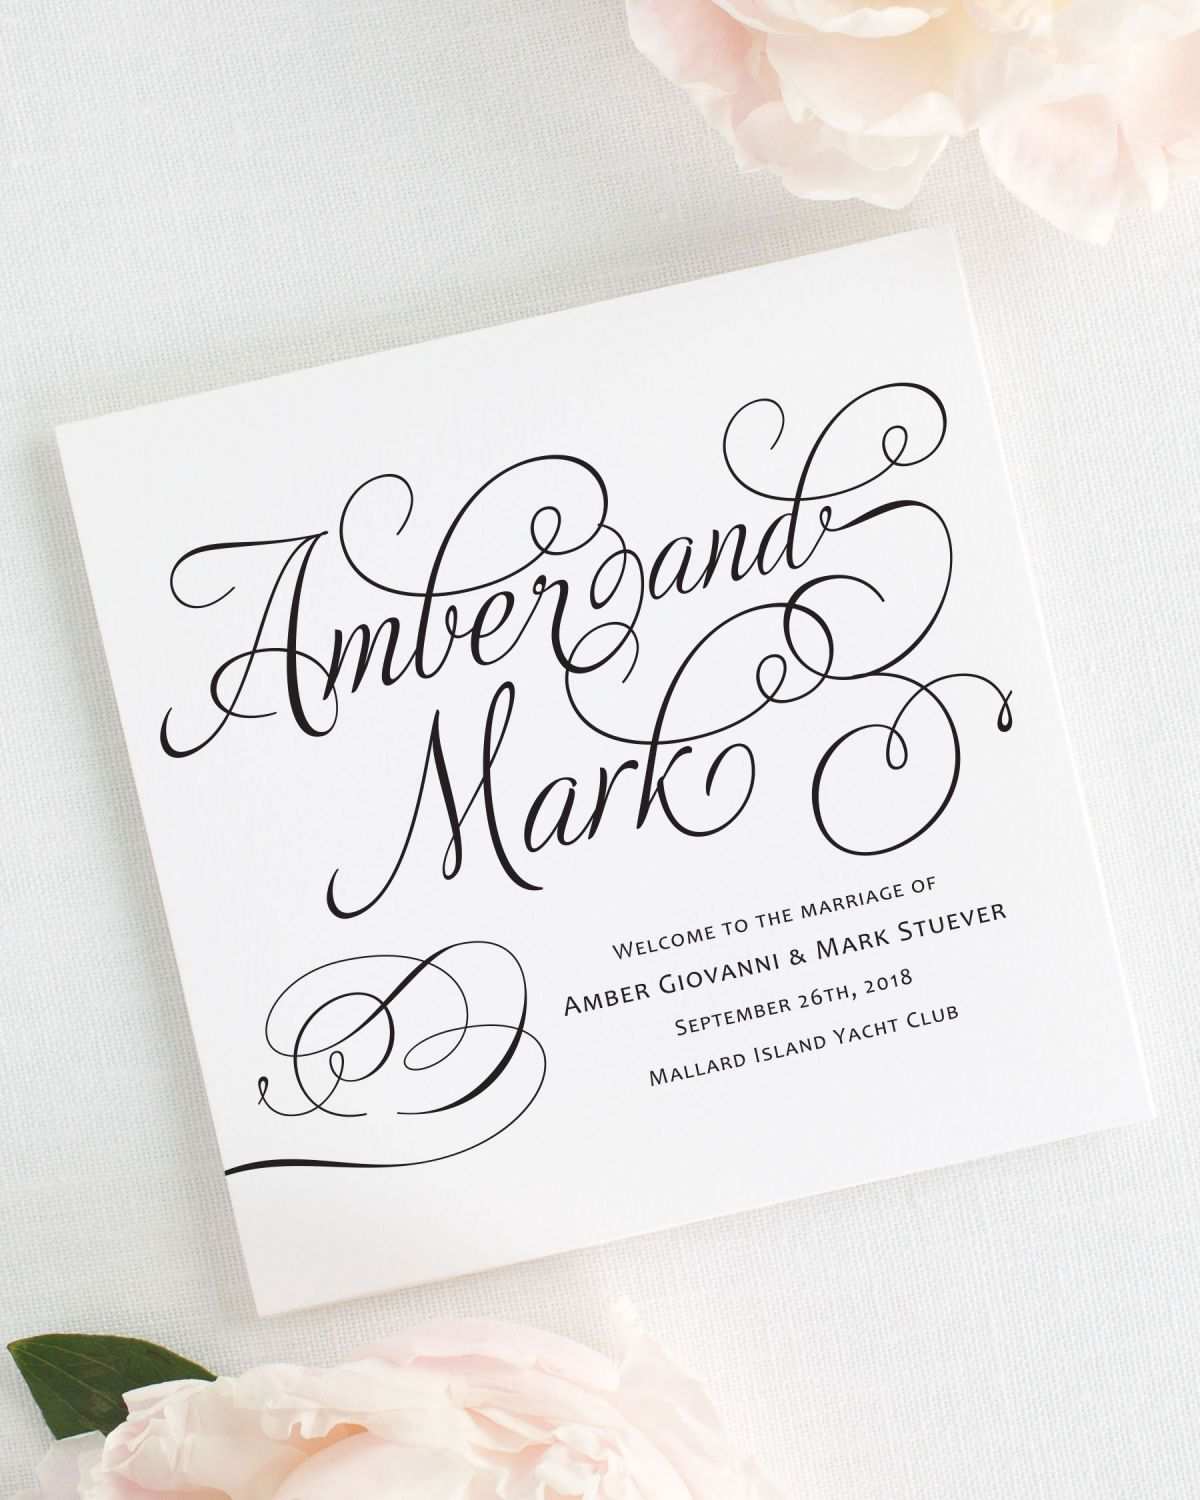 Charming Script Wedding Programs - Wedding Programs by Shine